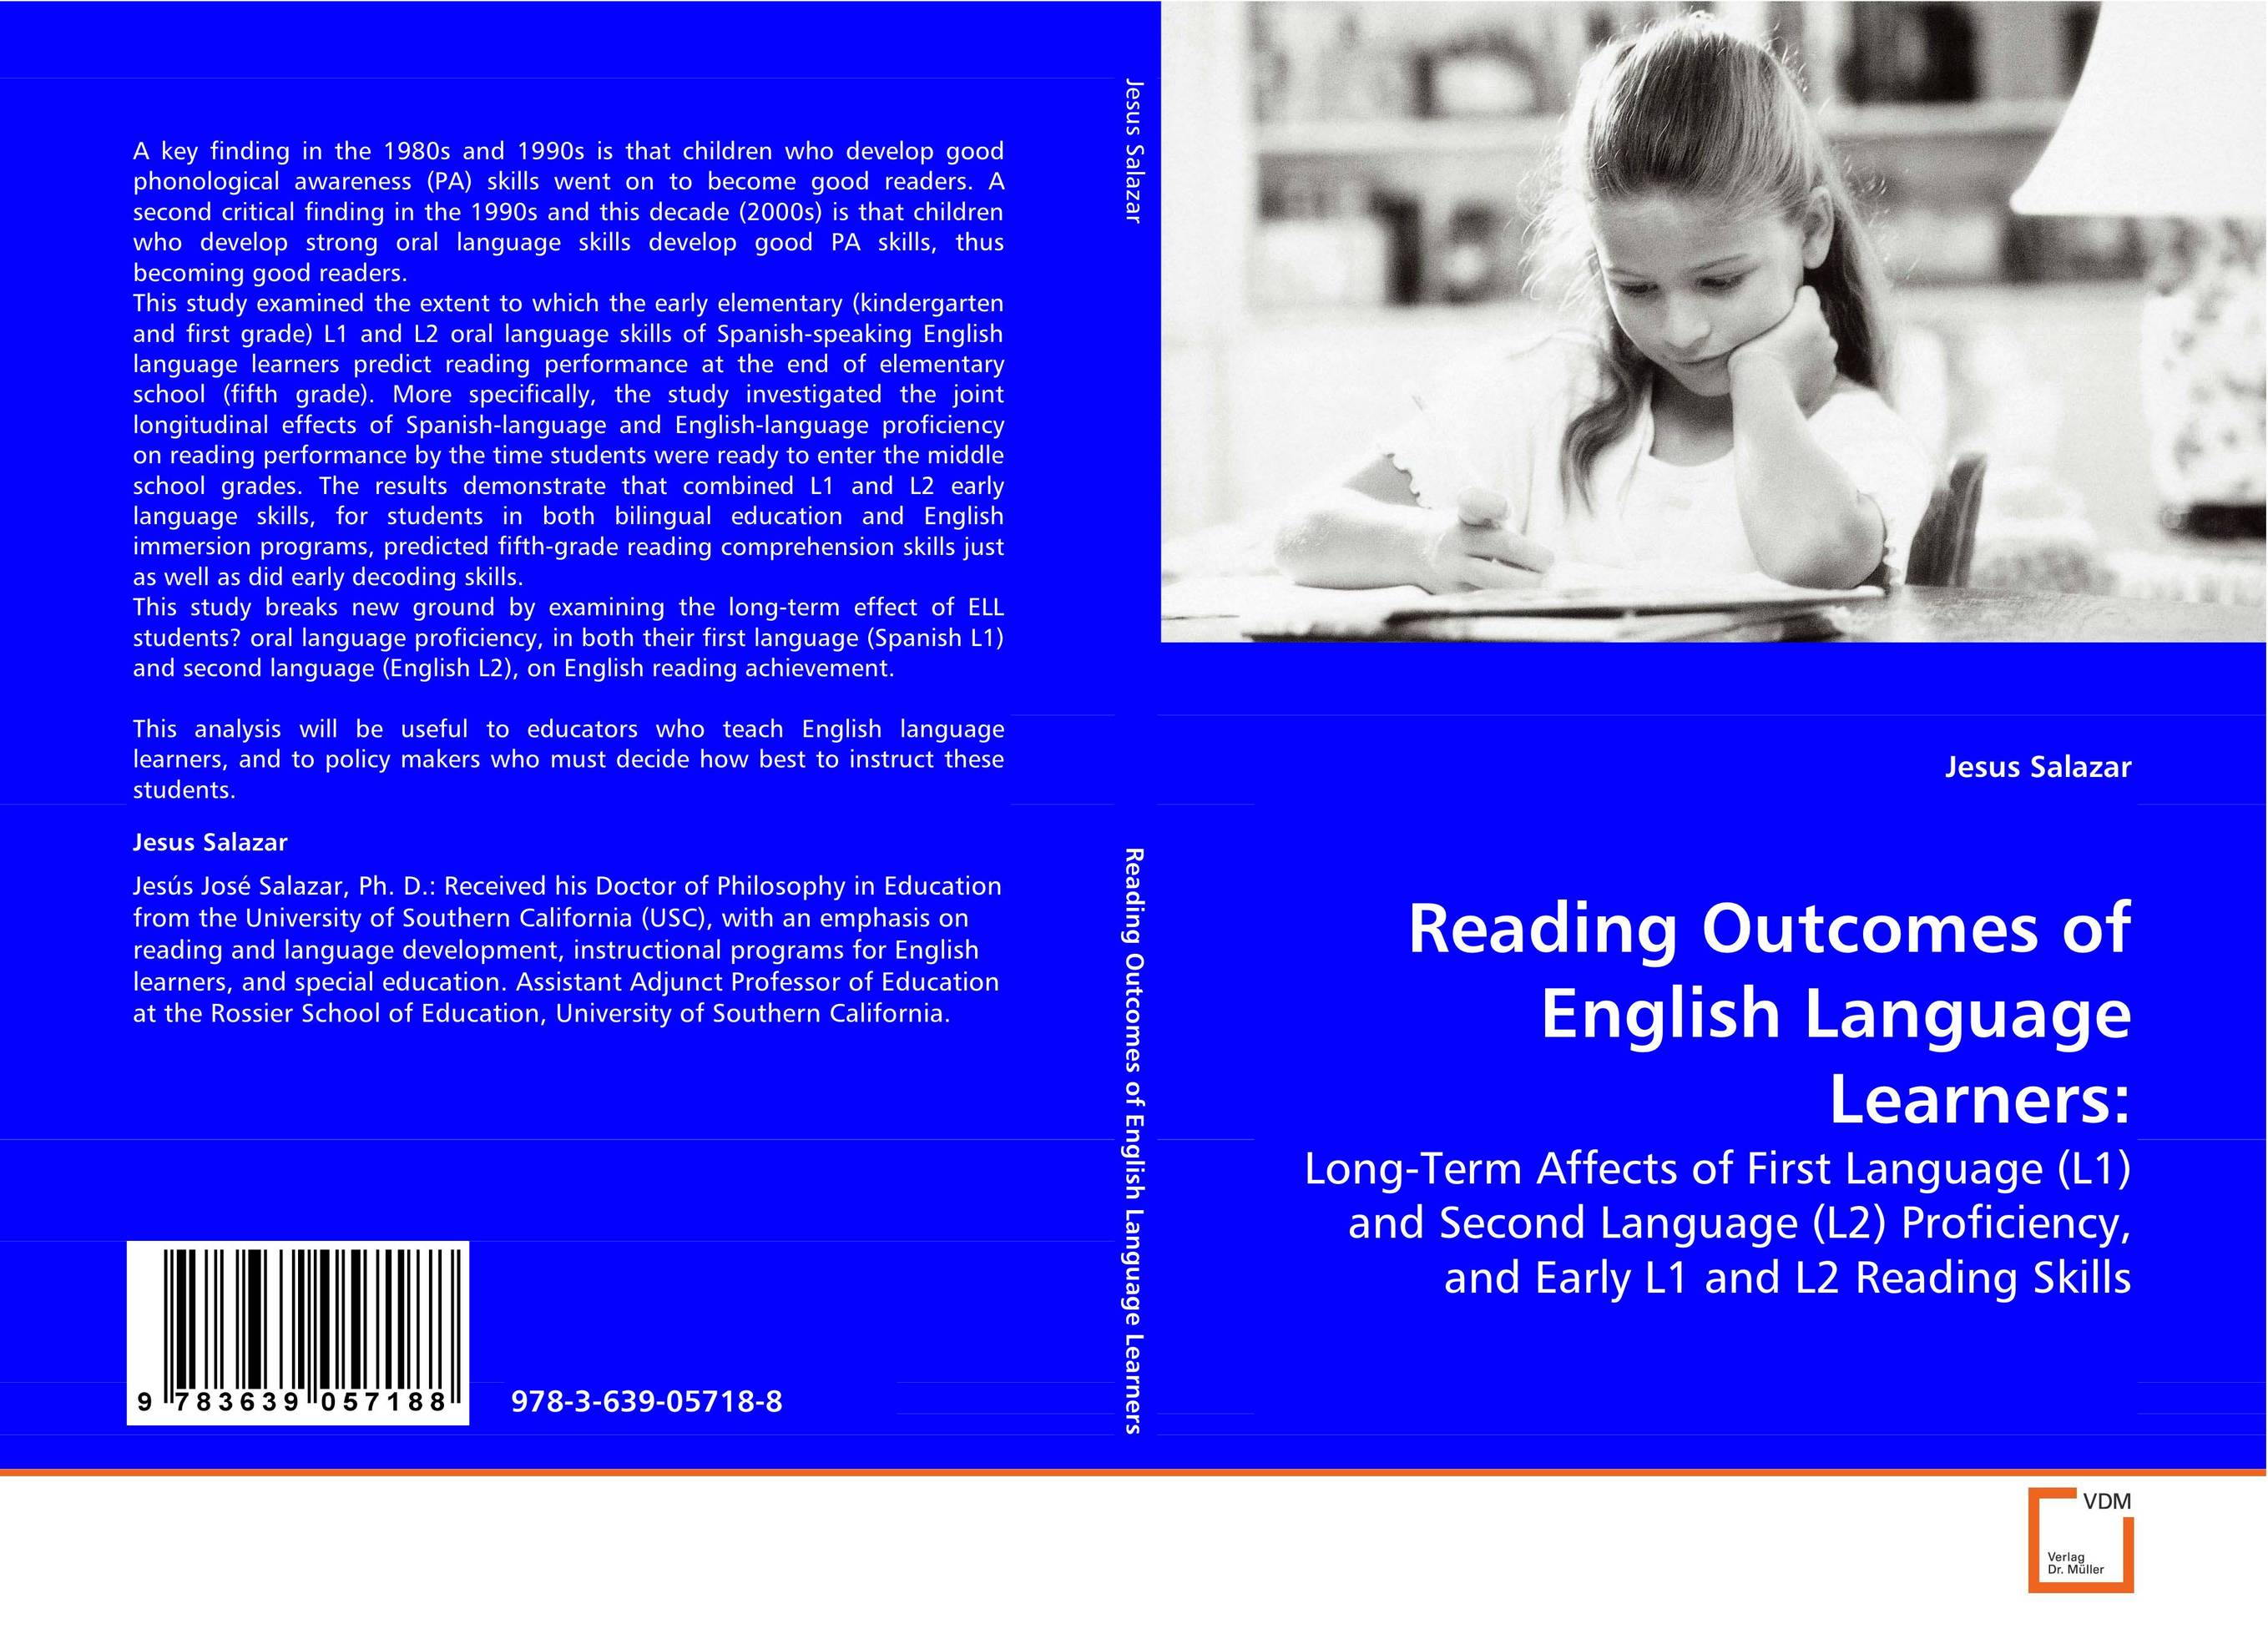 Reading Outcomes of English Language Learners: the impact of technology toward students performance